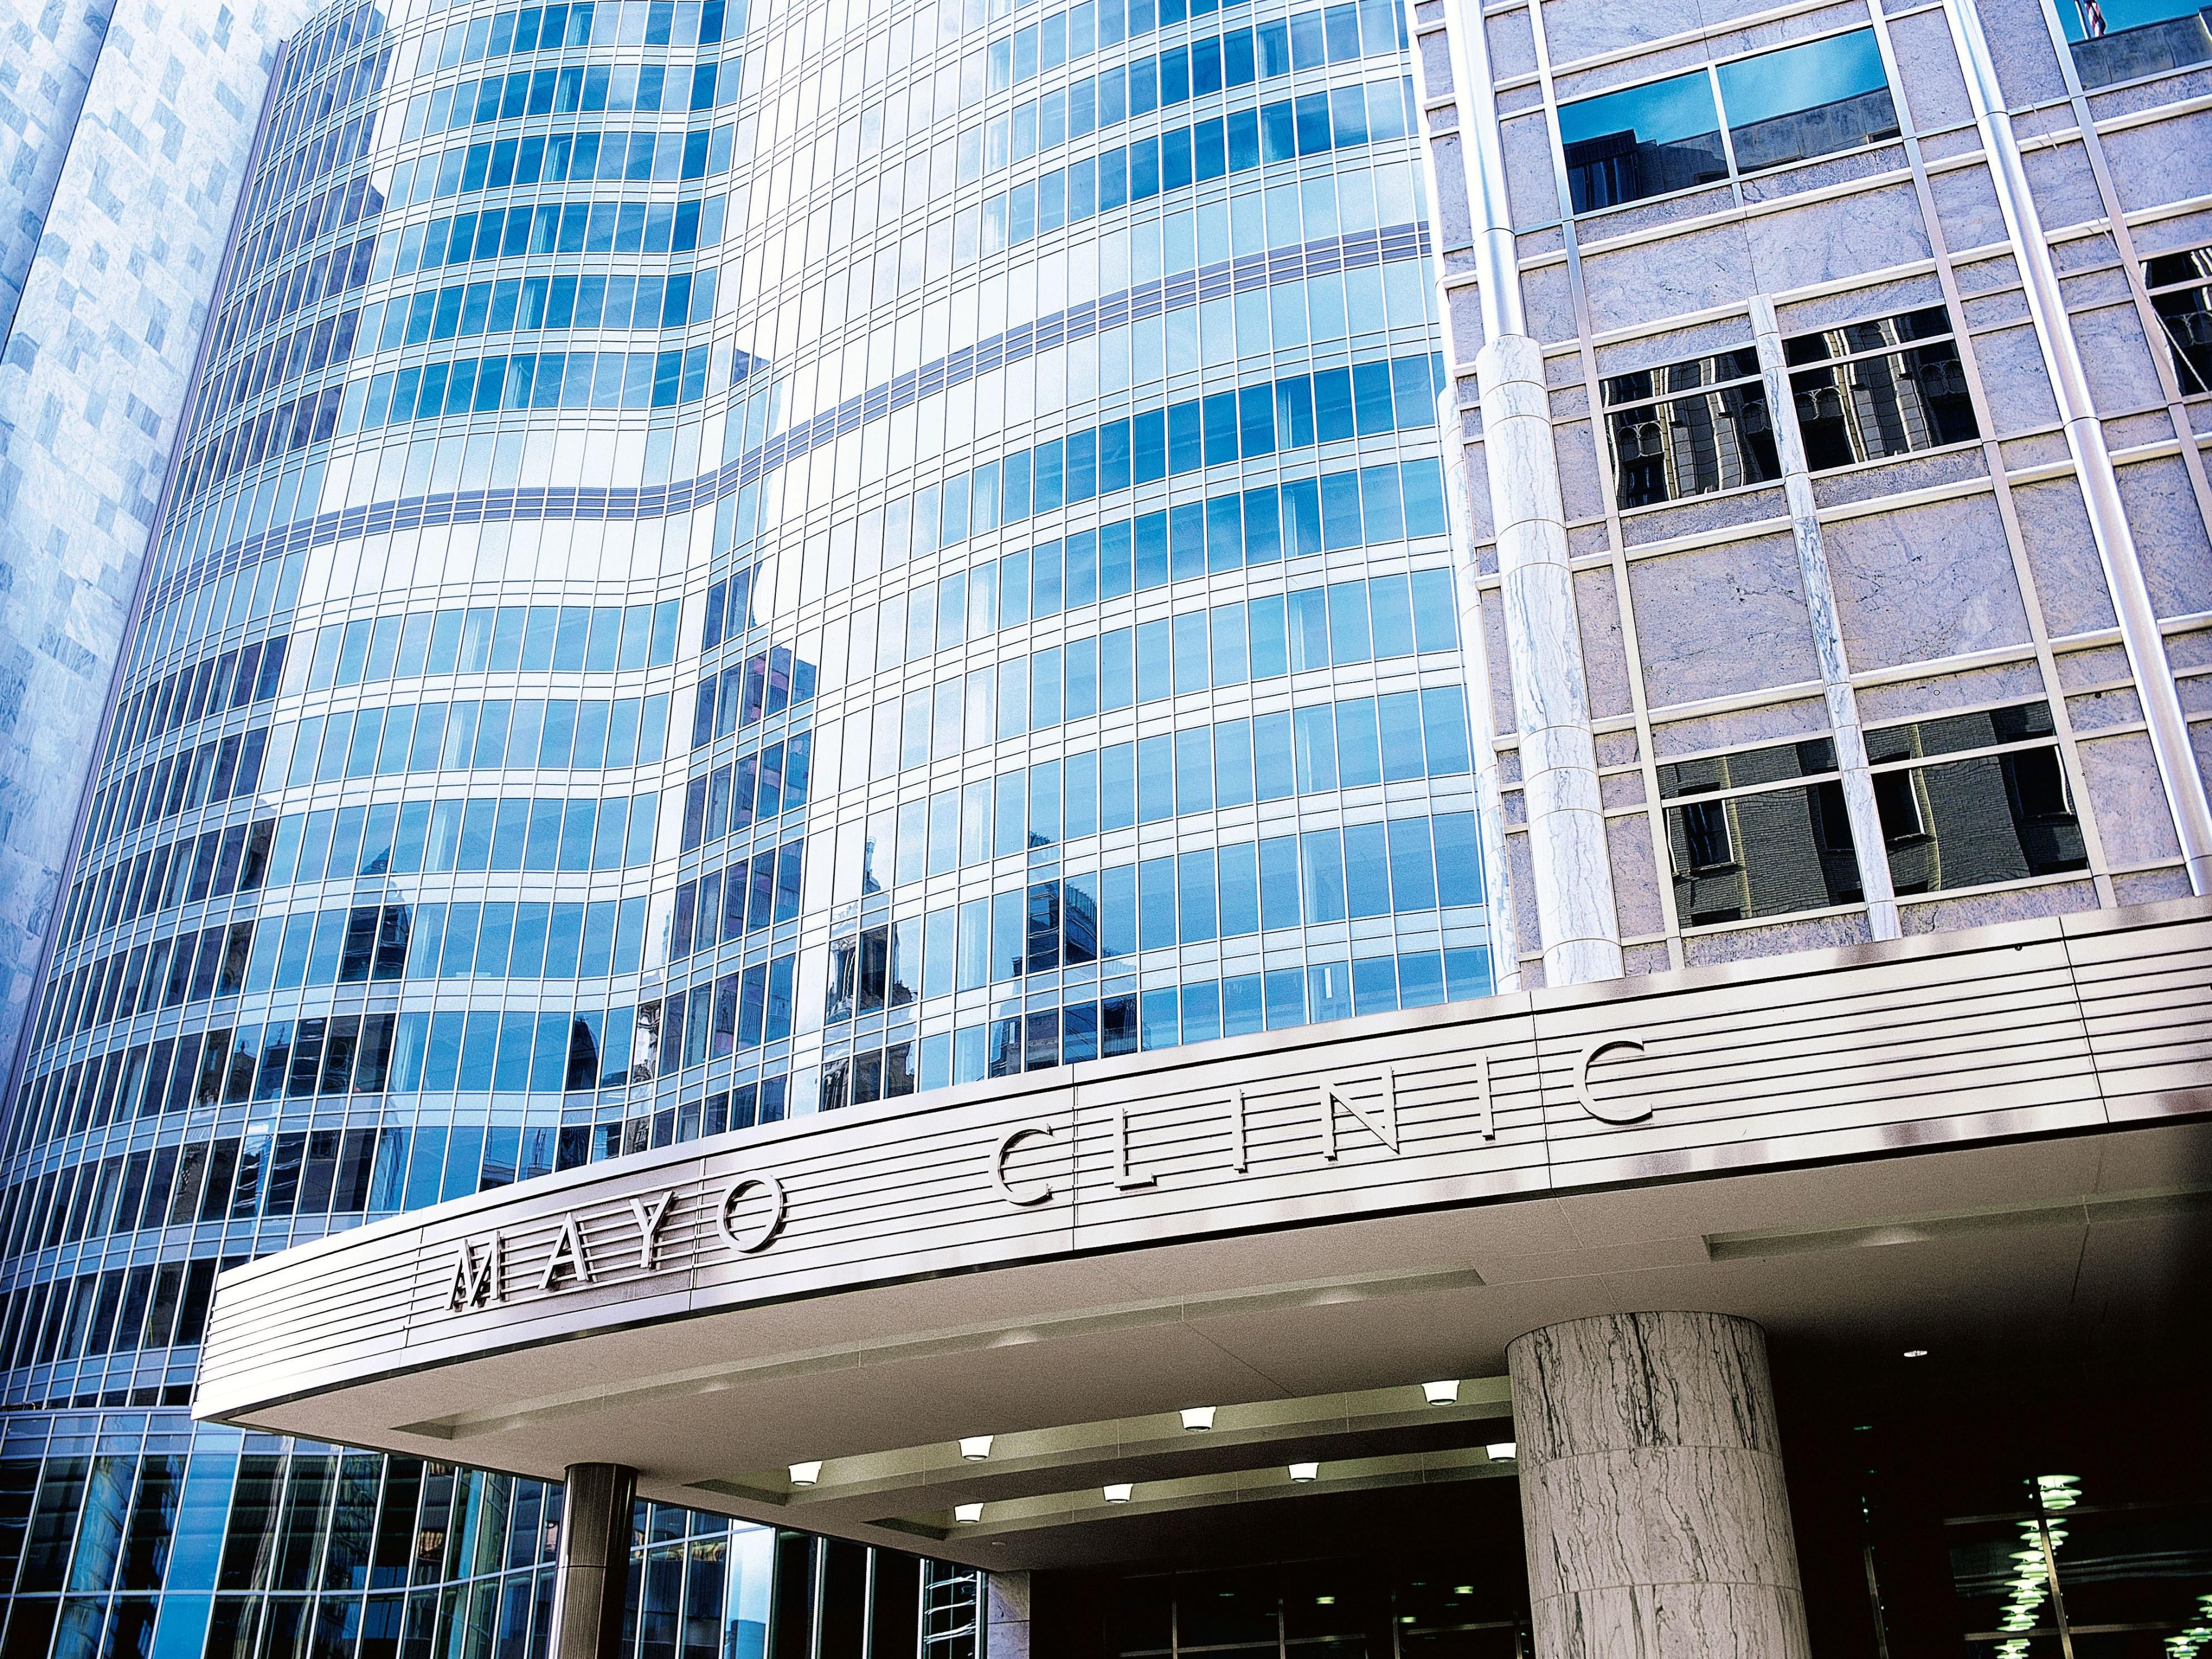 Mayo Clinic Feature